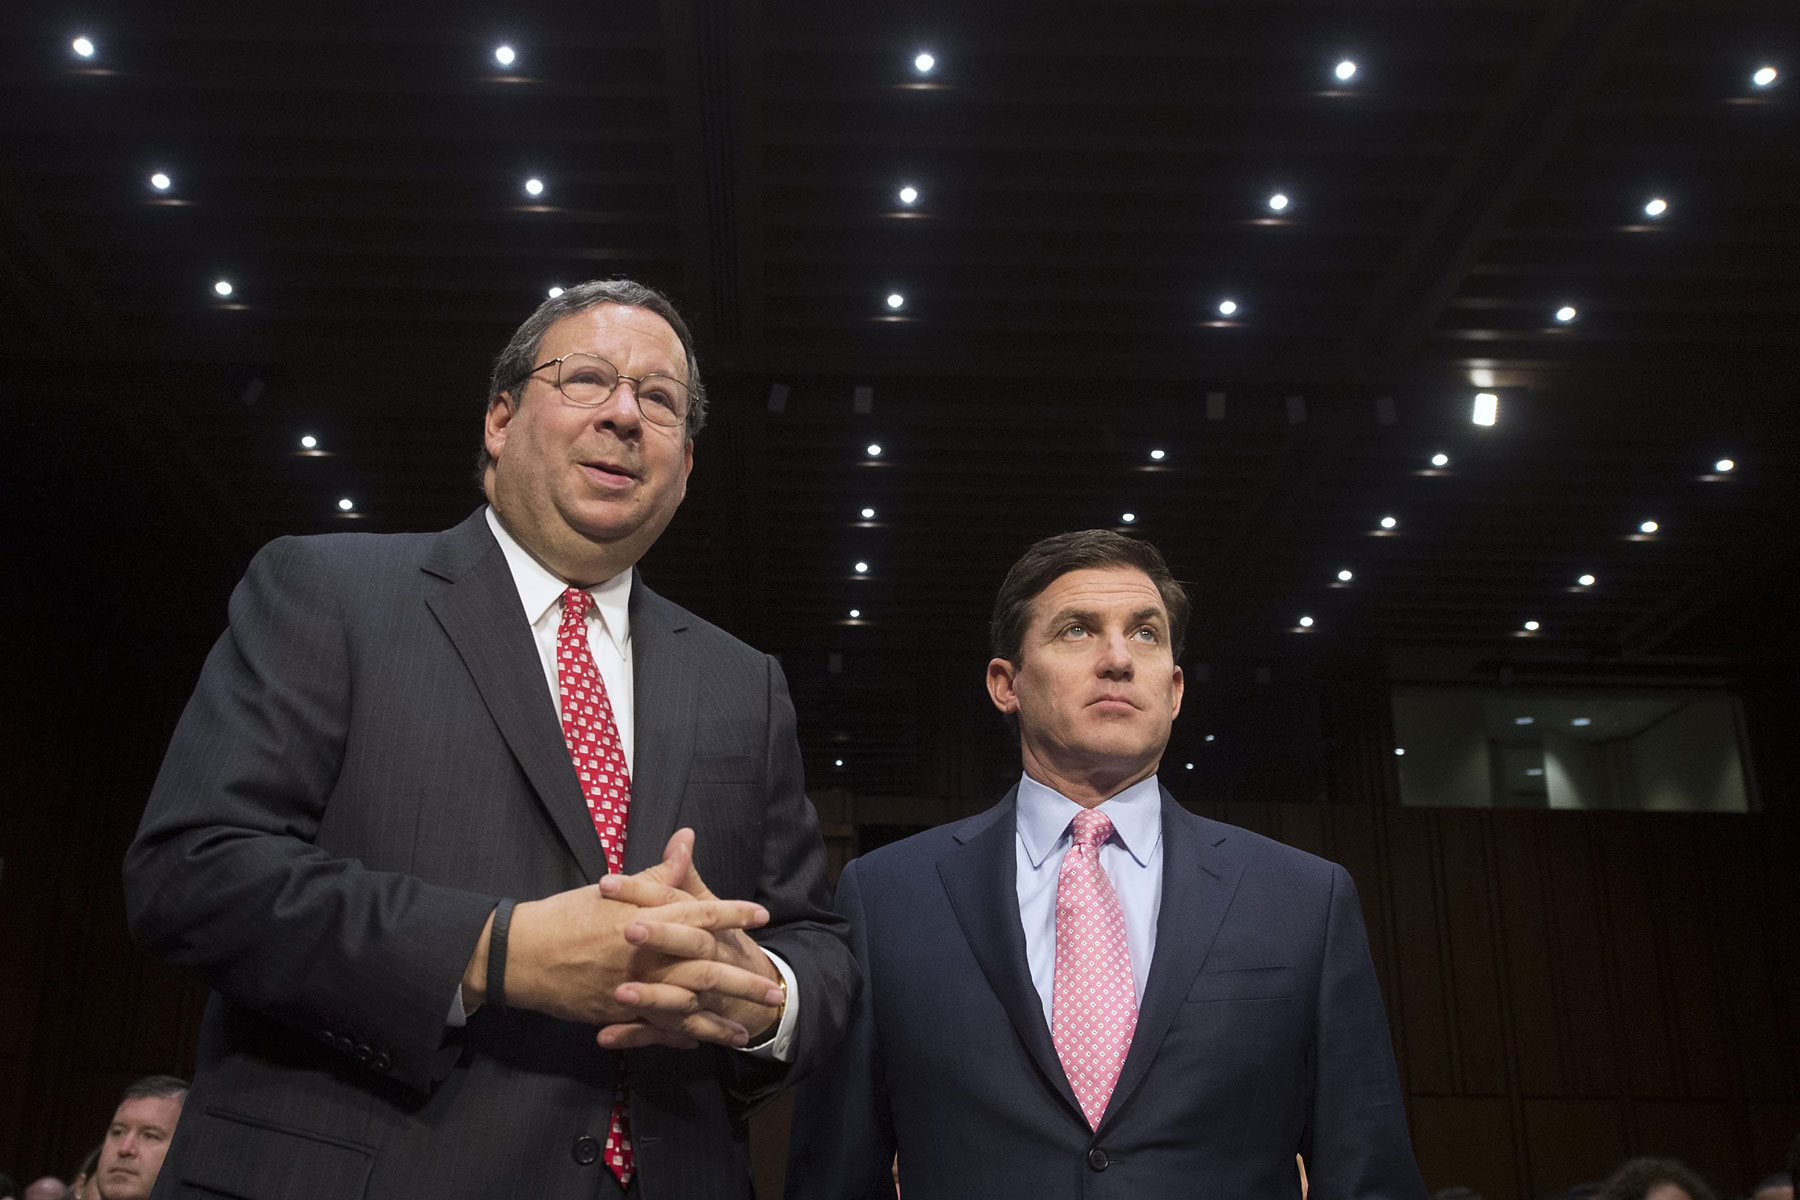 From left: David Cohen, executive vice president of the Comcast Corporation, speaks with Arthur Minson Jr., executive vice president and CFO of the Time Warner Cable Inc., before the start of a Senate Judiciary Committee hearing on Capitol Hill in Washington, April 9, 2014.